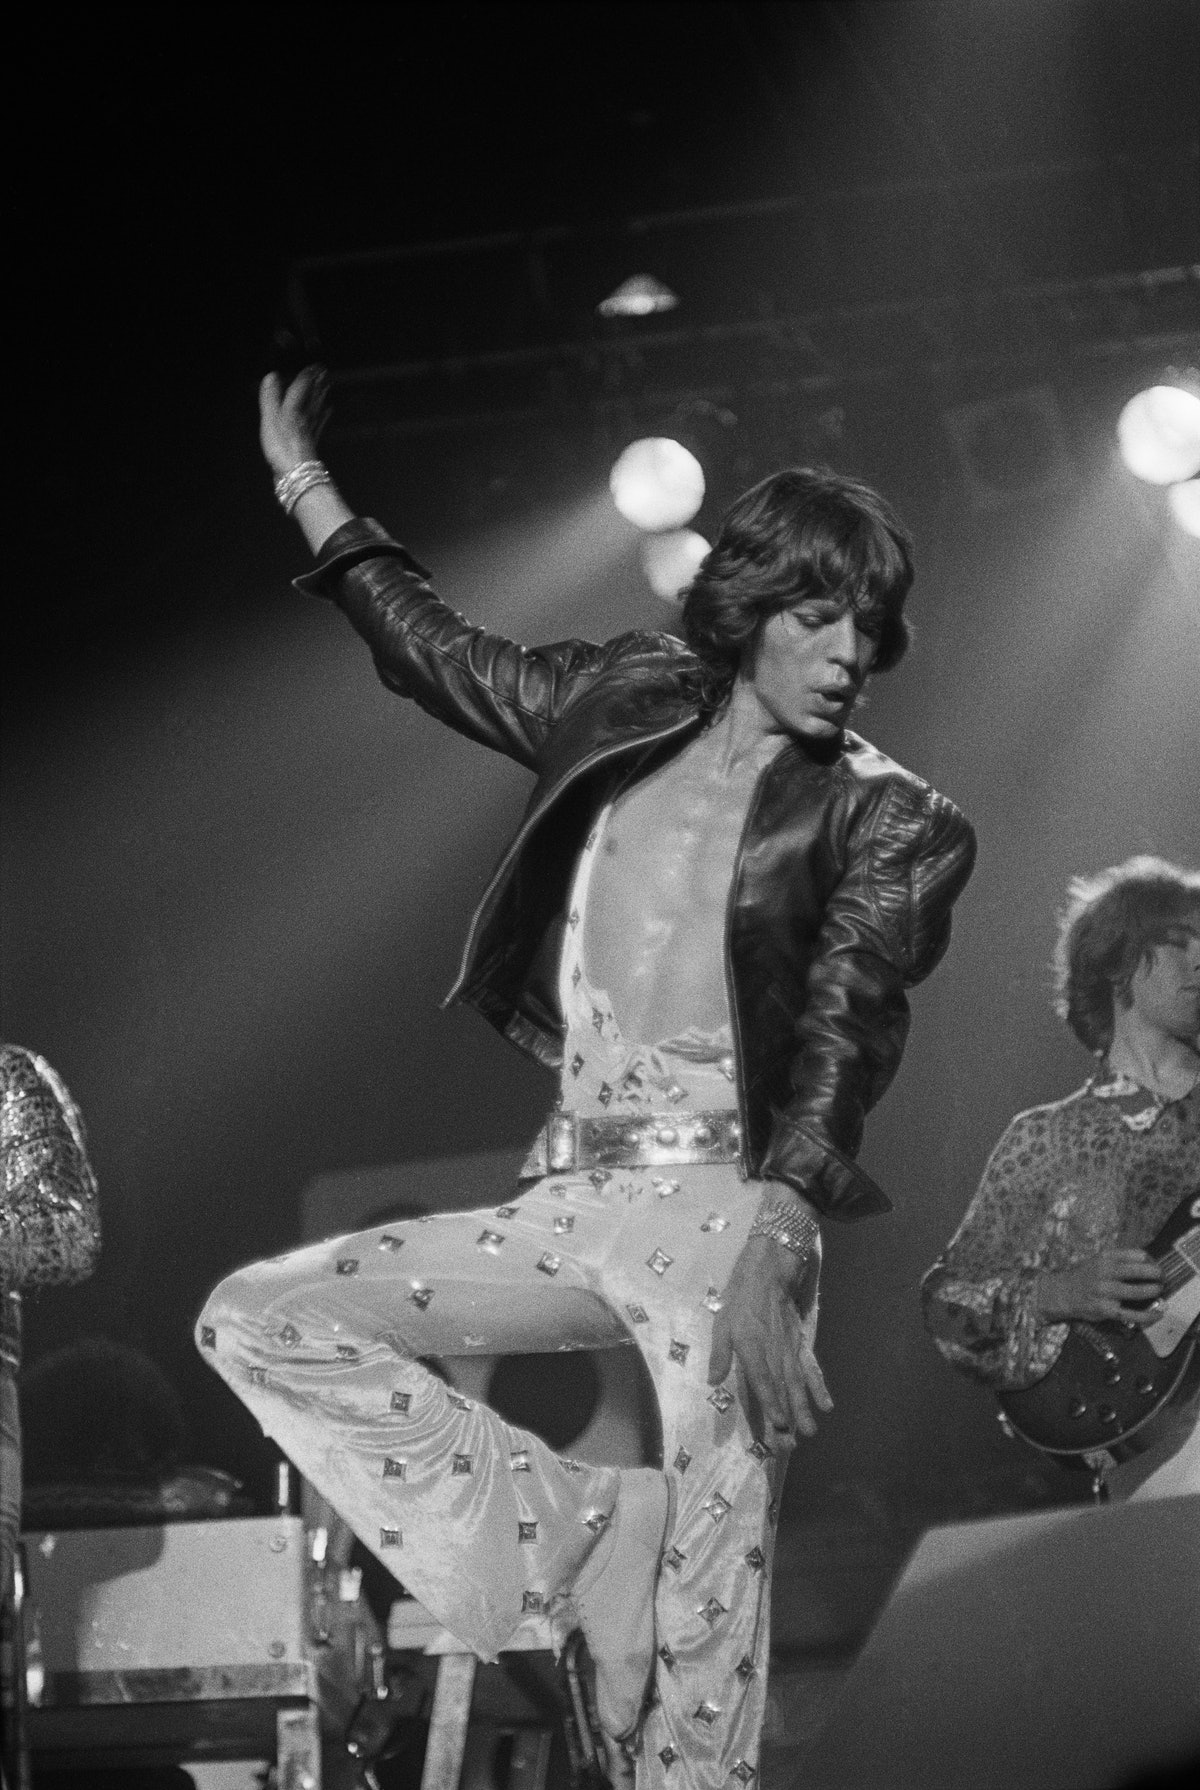 Mick Jagger performing with the Rolling Stones, 1973.